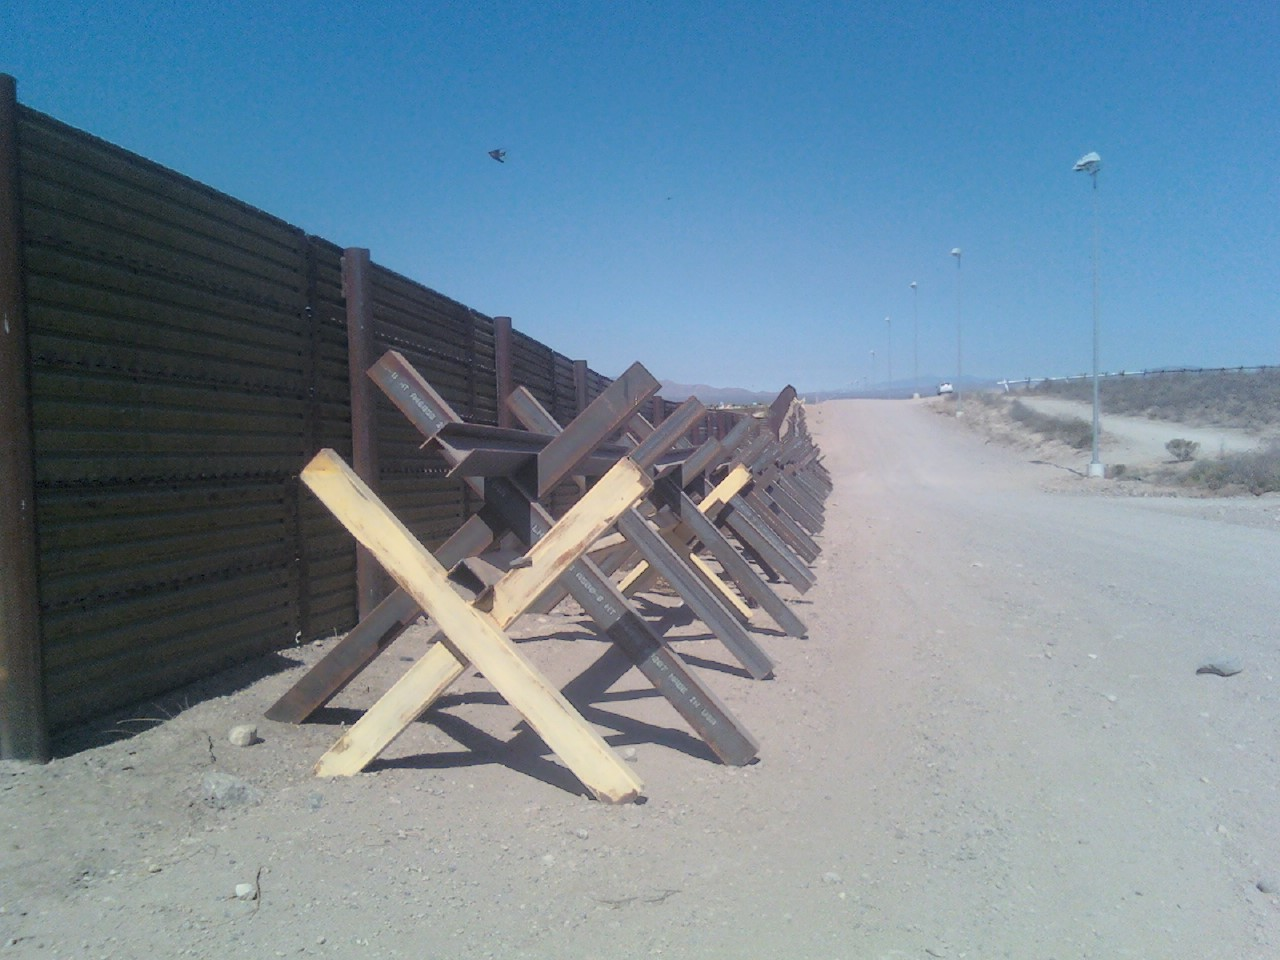 Country Border fence